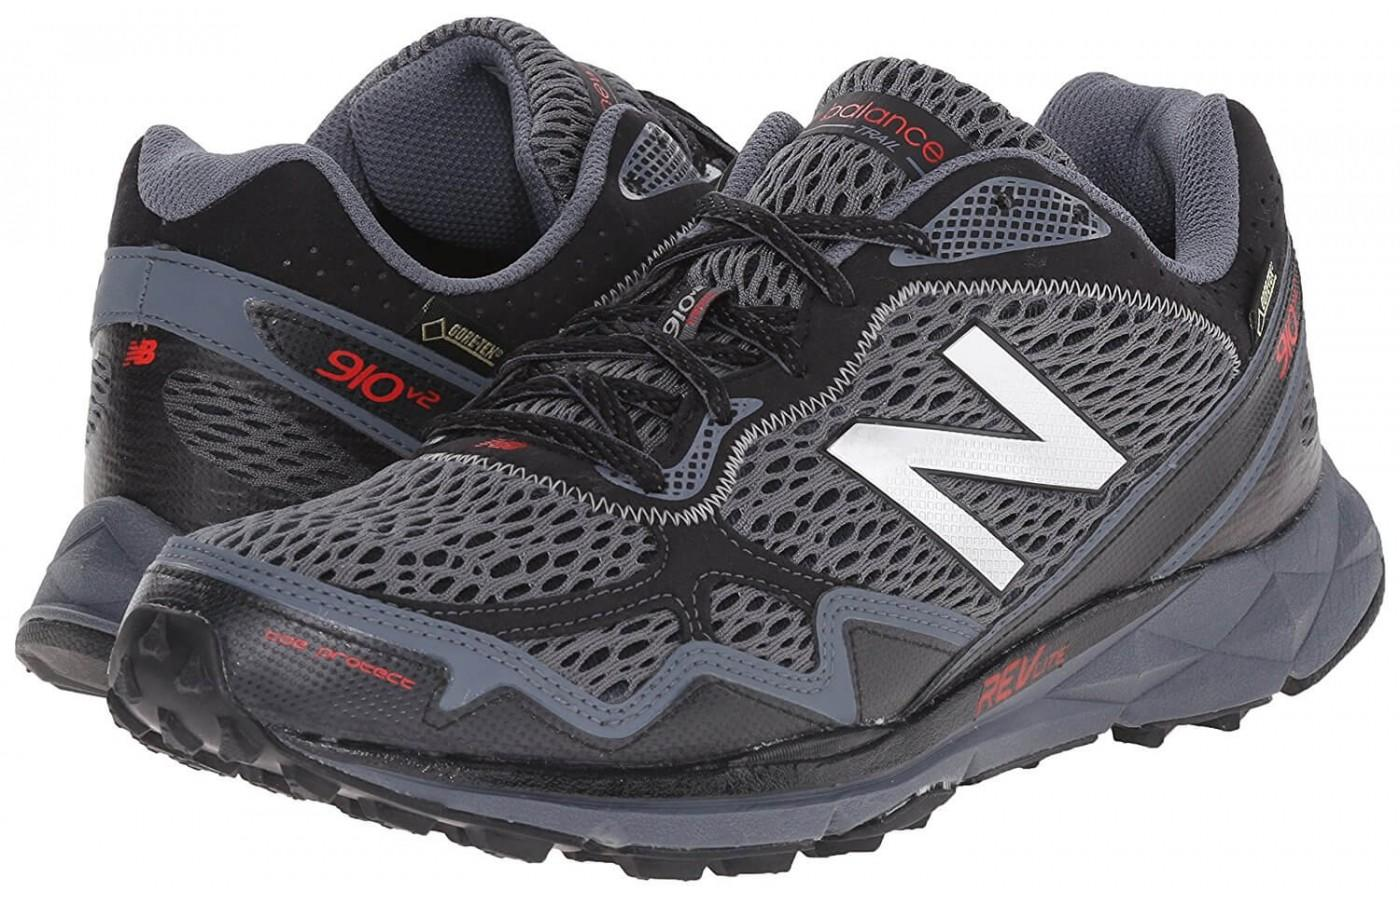 The New Balance 910v2 is reasonably priced